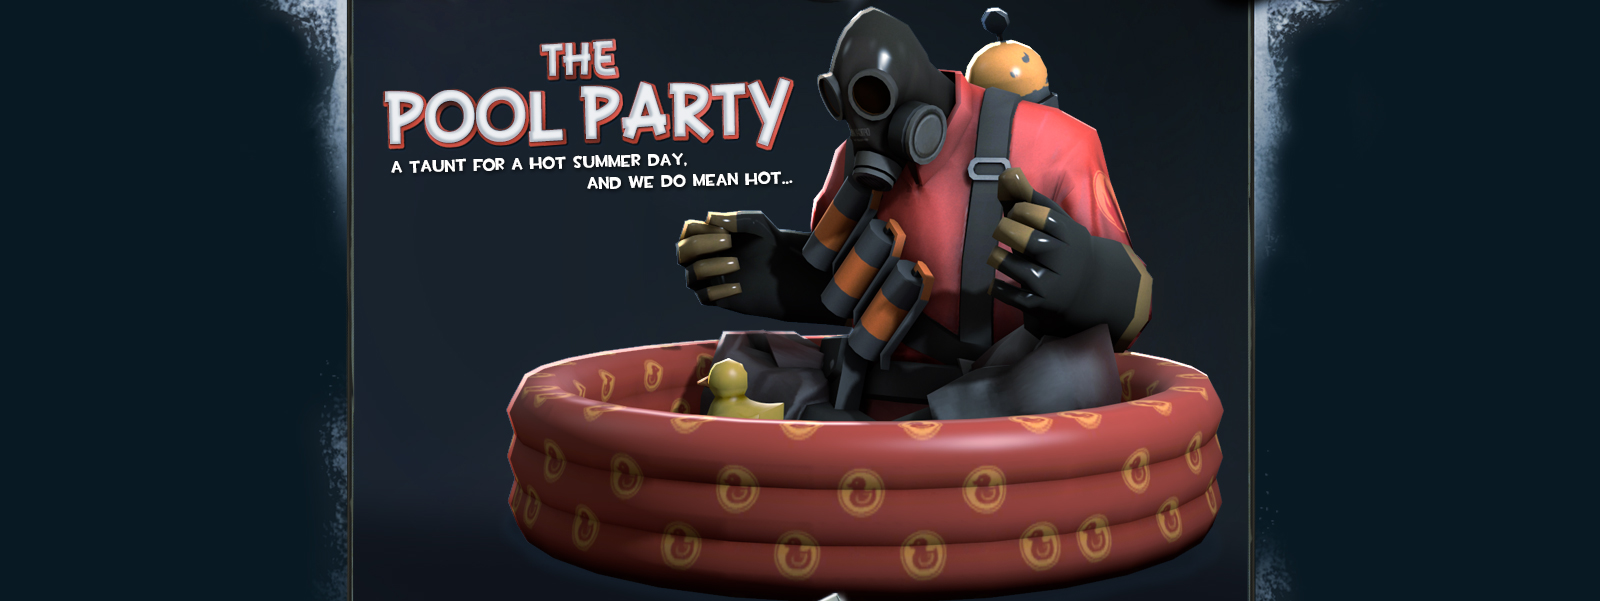 http://media.steampowered.com/apps/tf2/endoftheline/images/bg_03.jpg